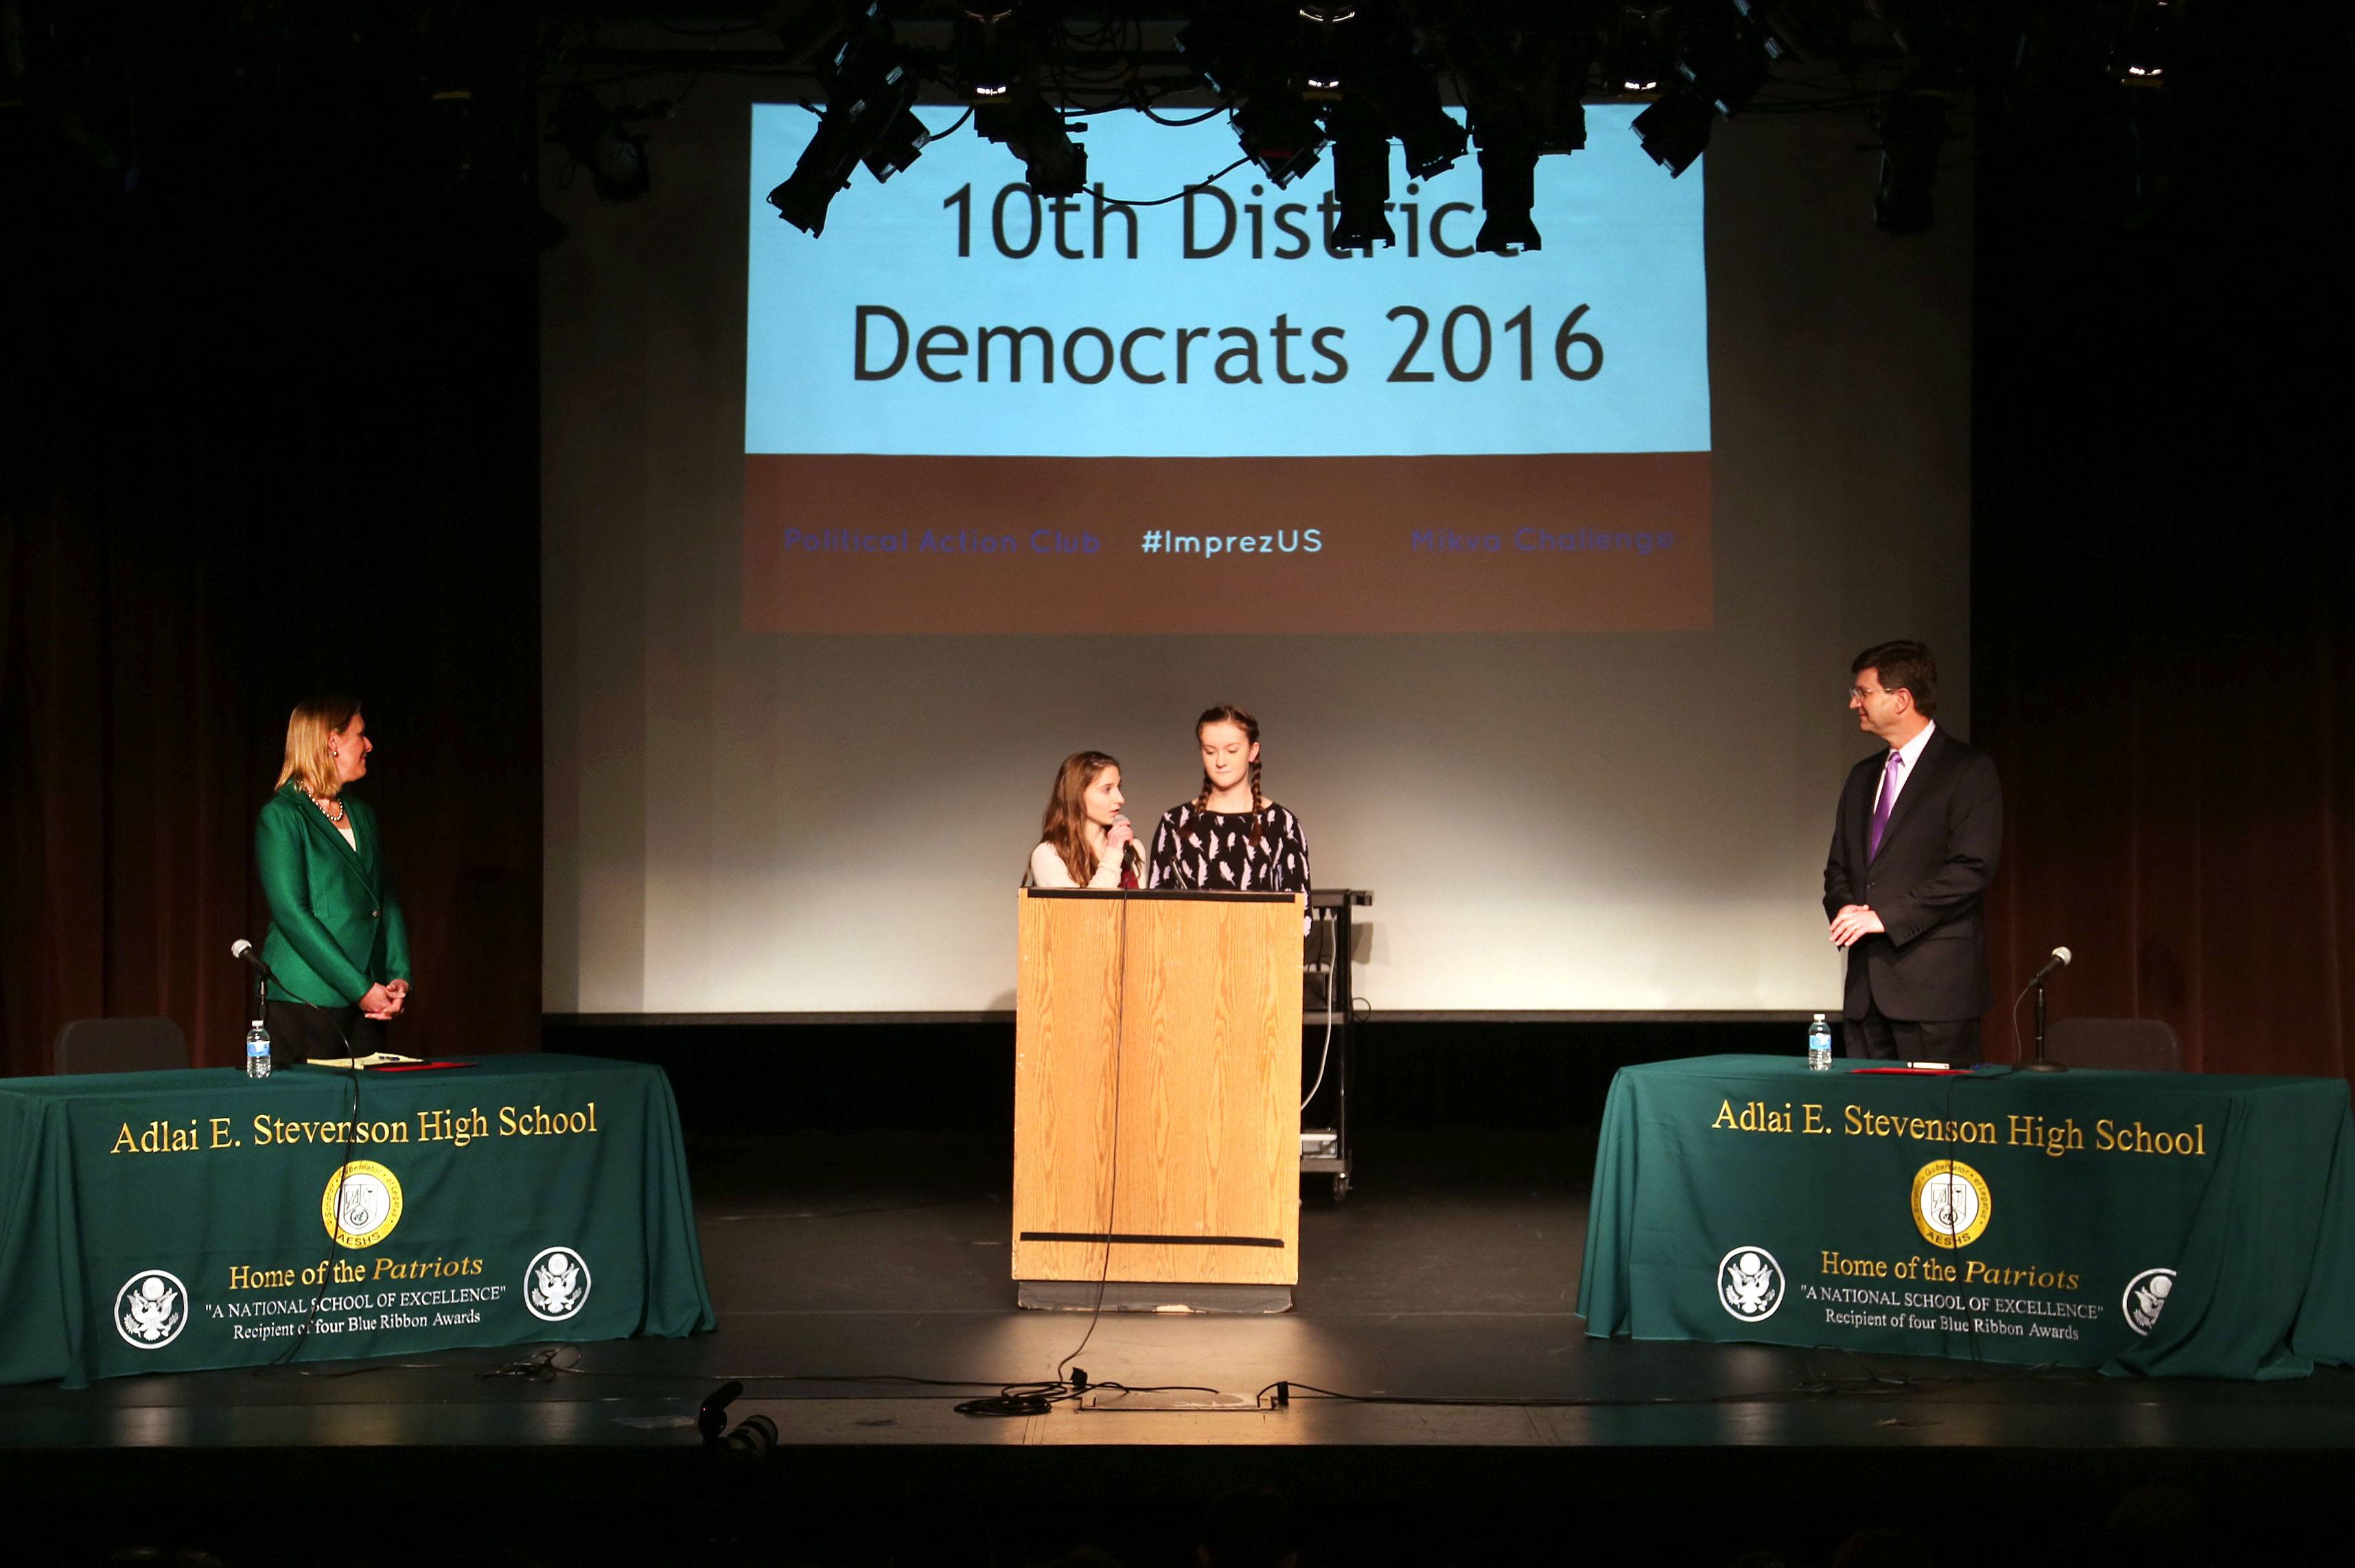 Nancy Rotering, left, and Brad Schneider, Democrats running for the 10th Congressional District seat, are introduced by student moderators Sophia Siegel, left, and Julia Ellis during a debate Wednesday at Stevenson High School in Lincolnshire.